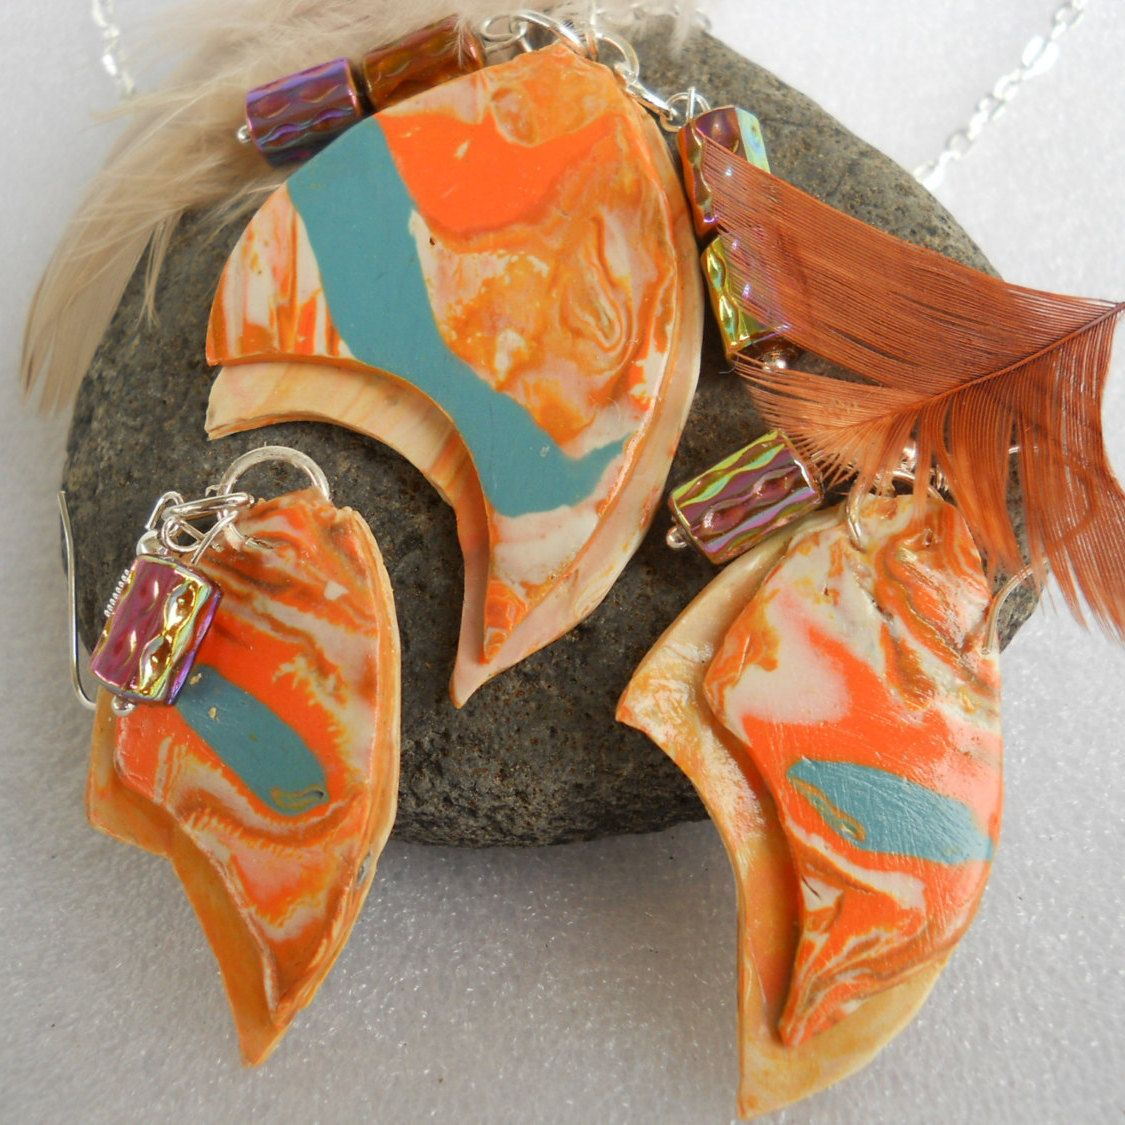 Jeweled Land Is a  colorful pendant and earring set .The beautiful pattern is created by the Makuma Gane method of layering clay colors by Carrolcreates4u on Etsy